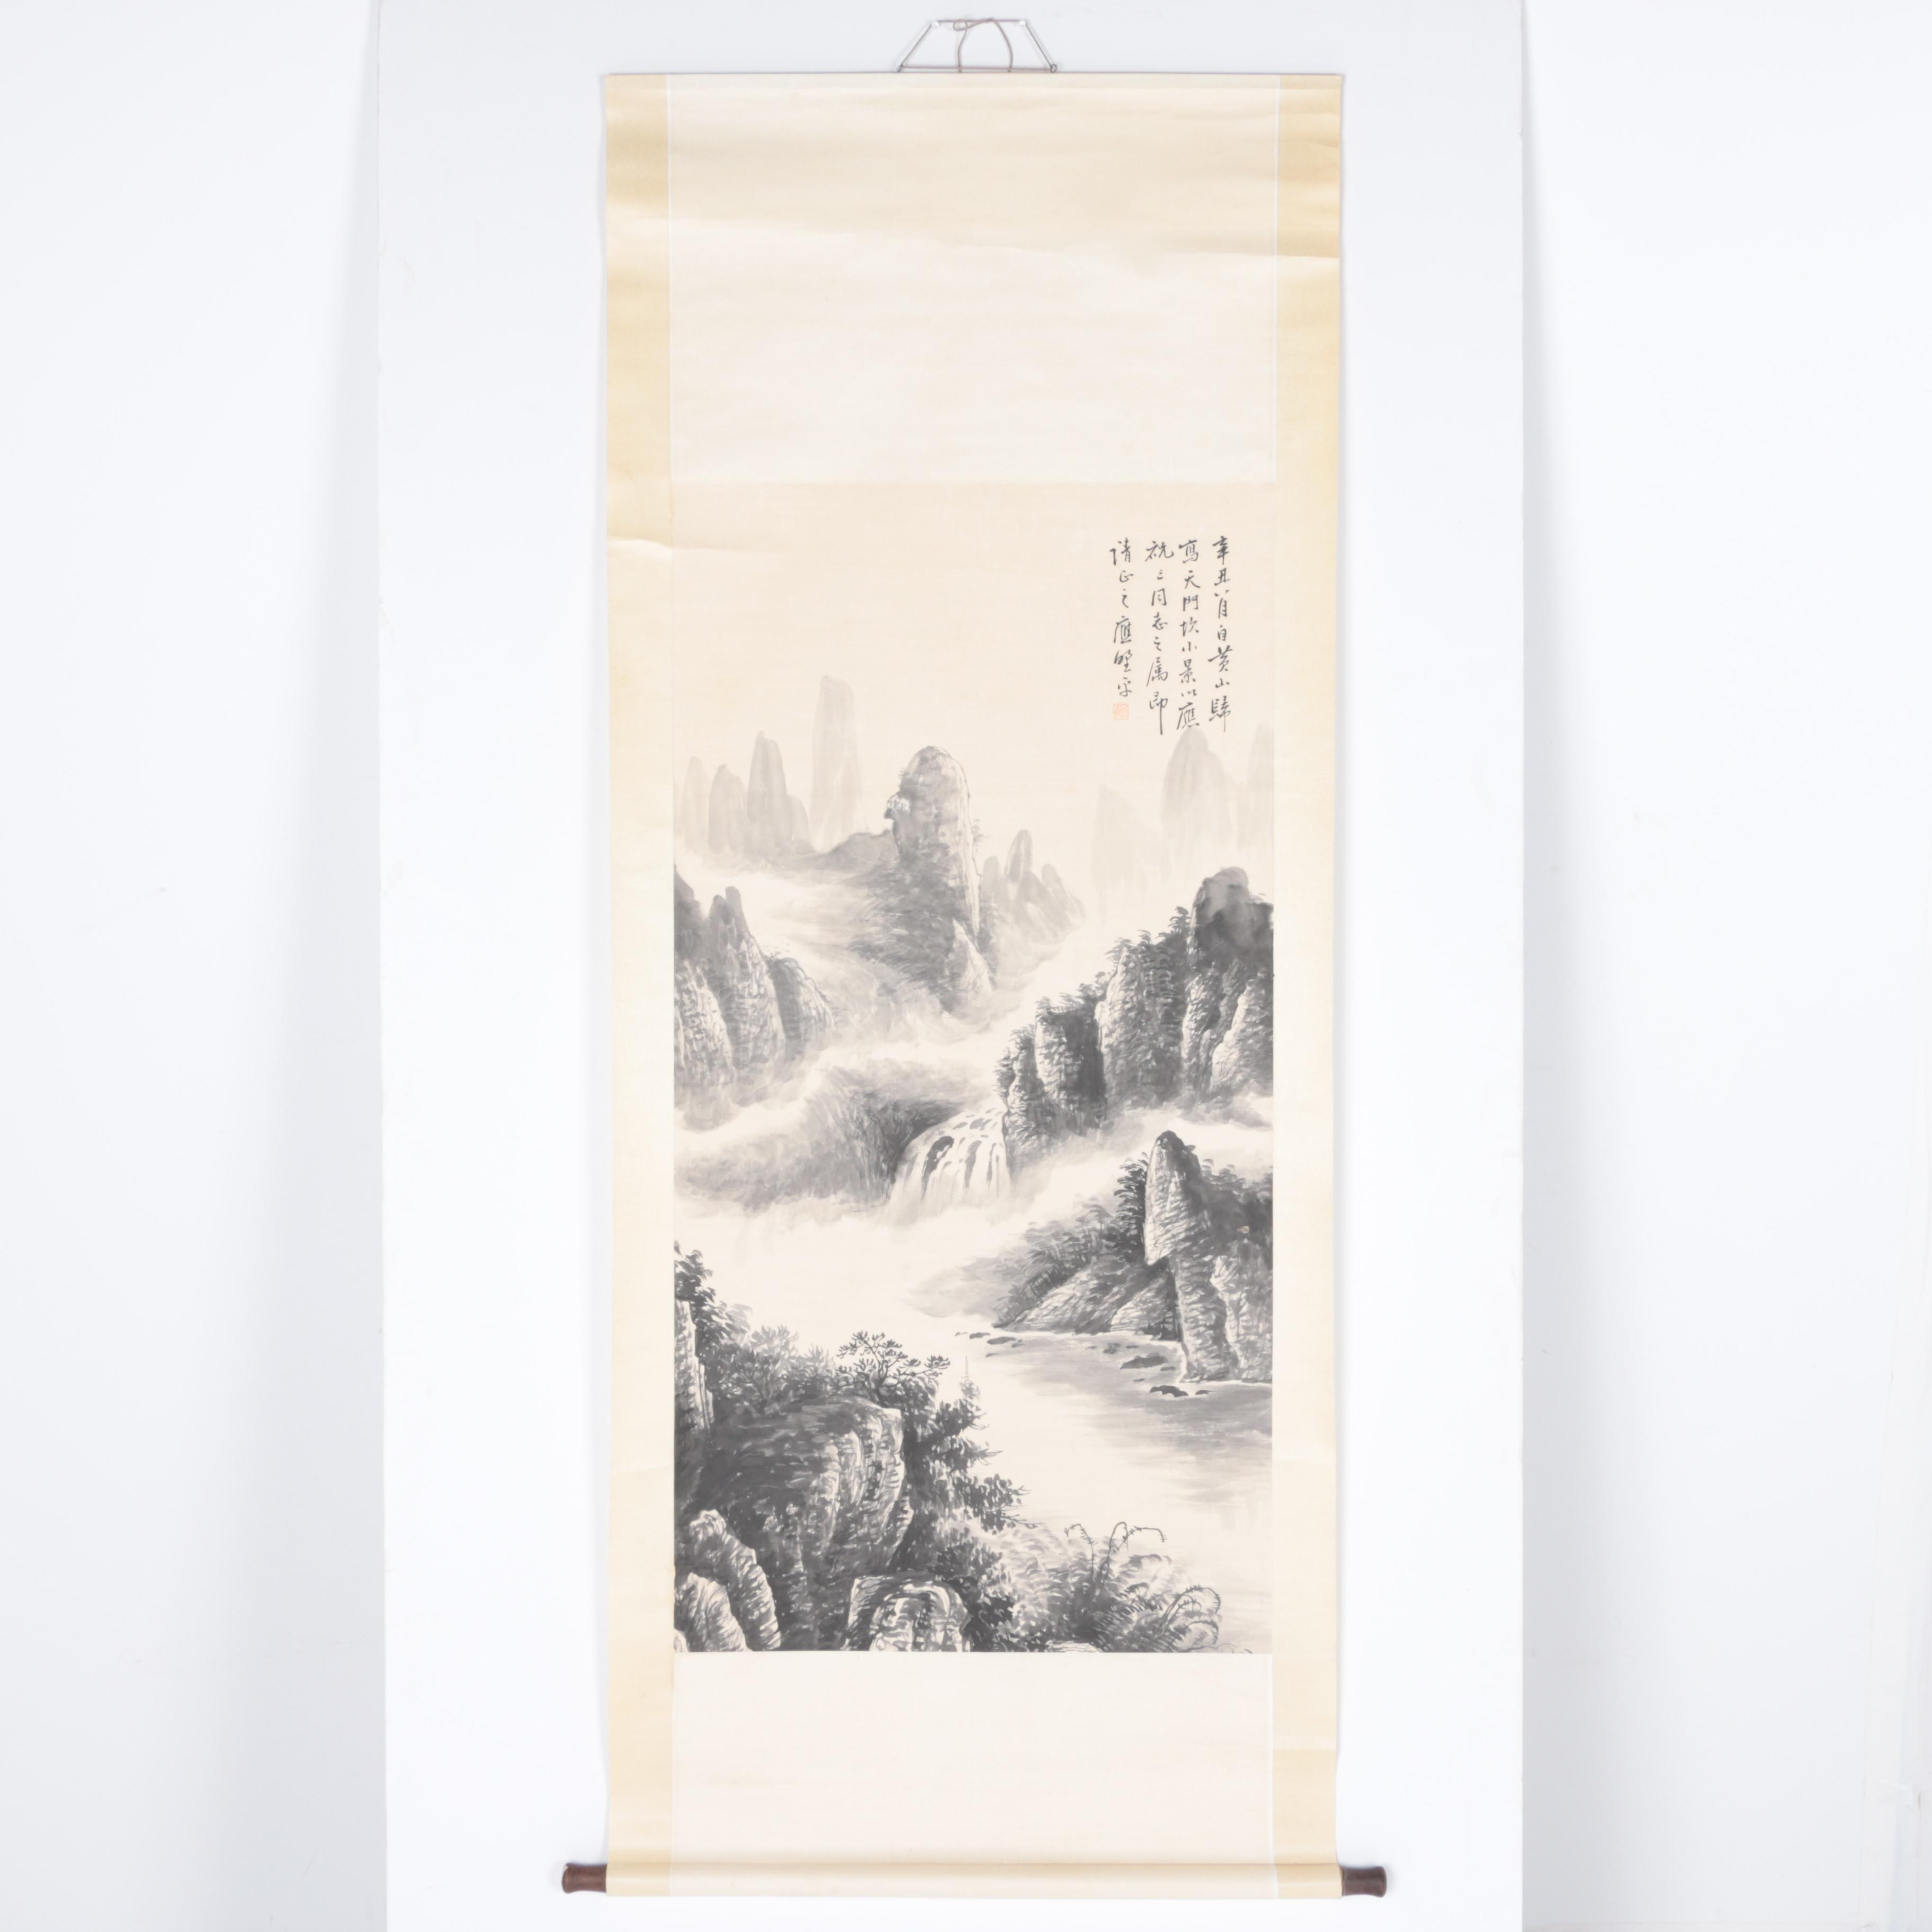 East Asian Style Ink and Watercolor Painting of Mountain Landscape on Hanging Scroll